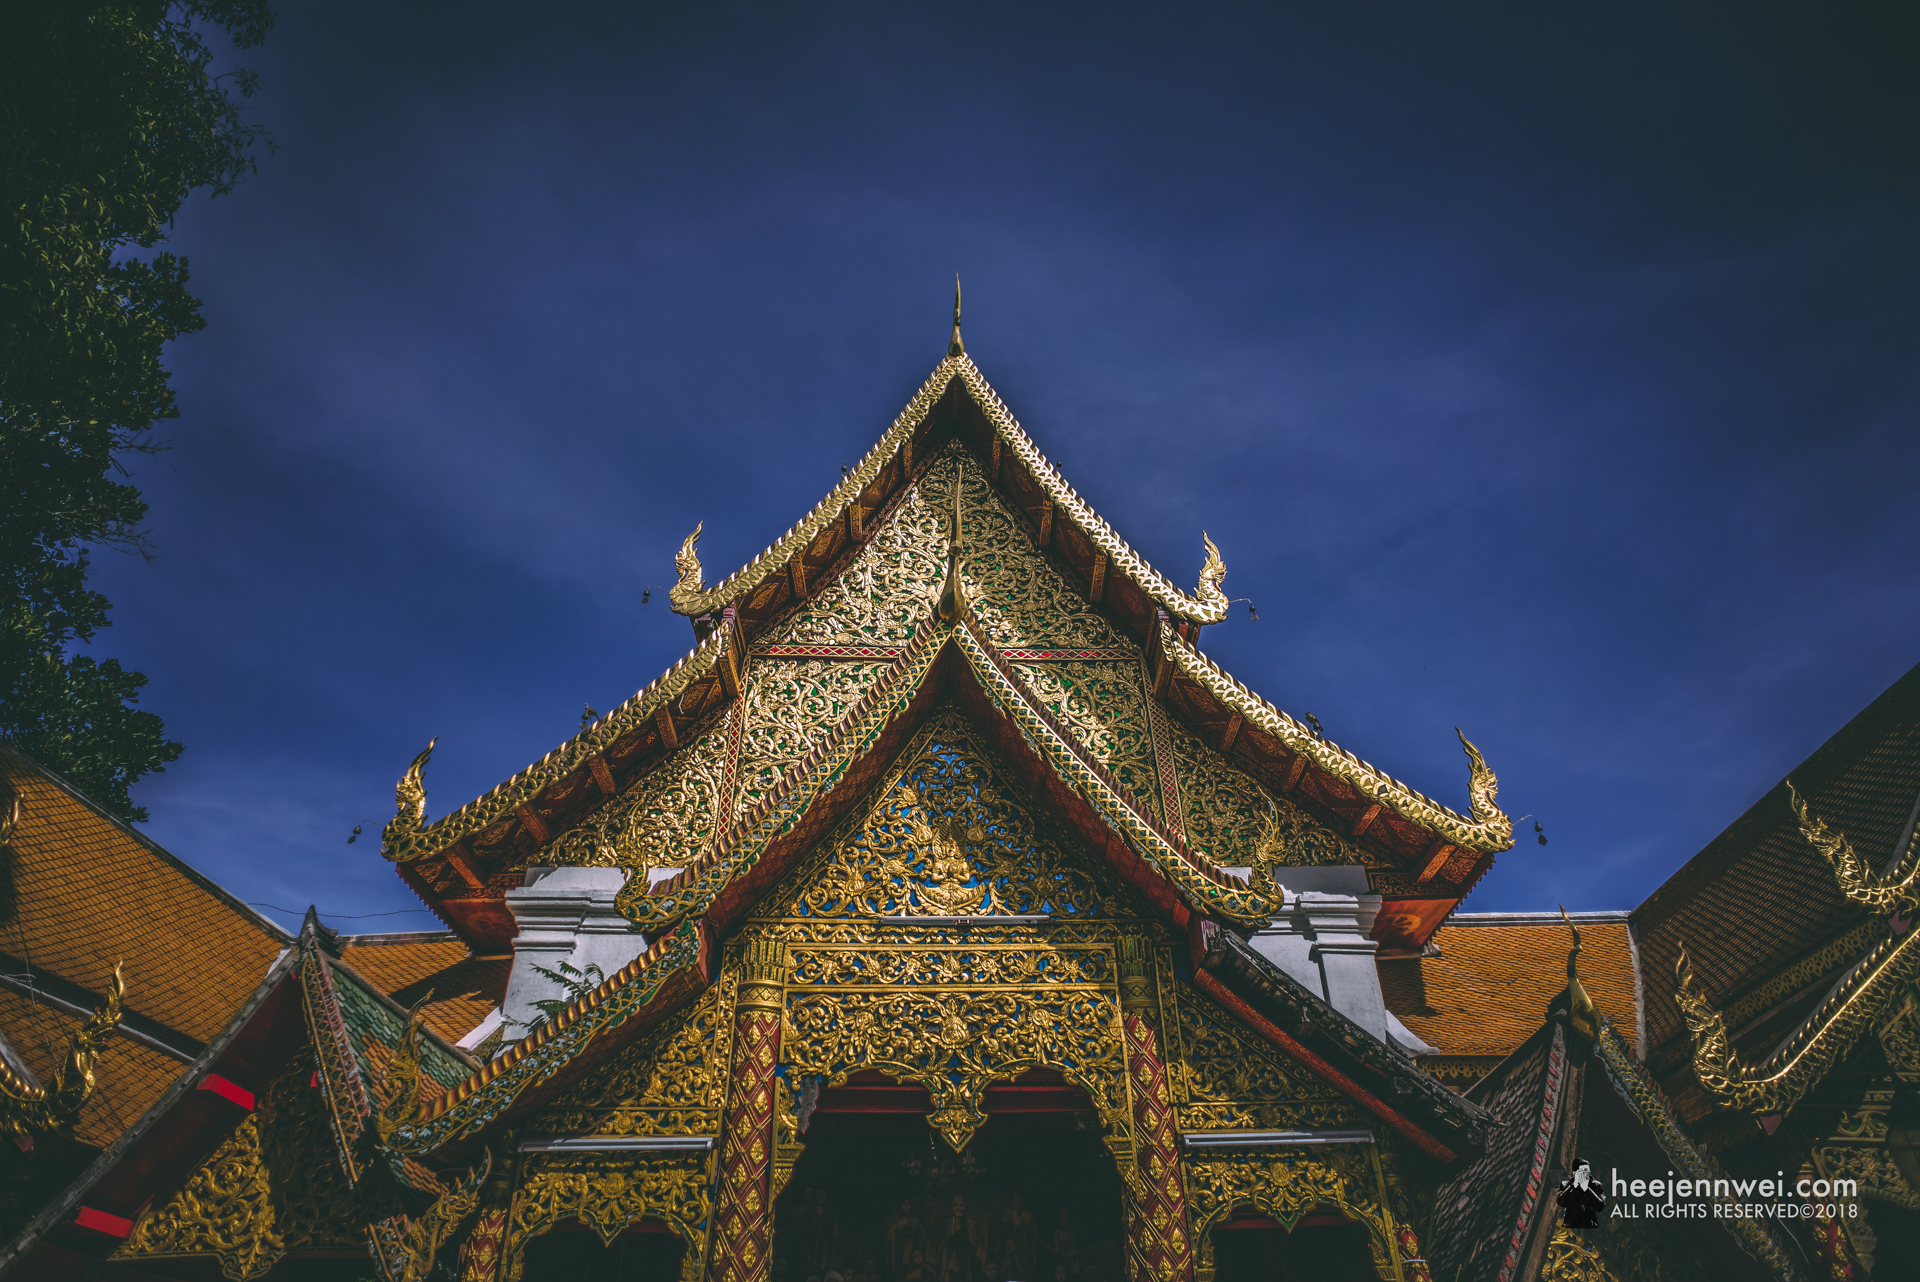 Entrance to the golden chedi.